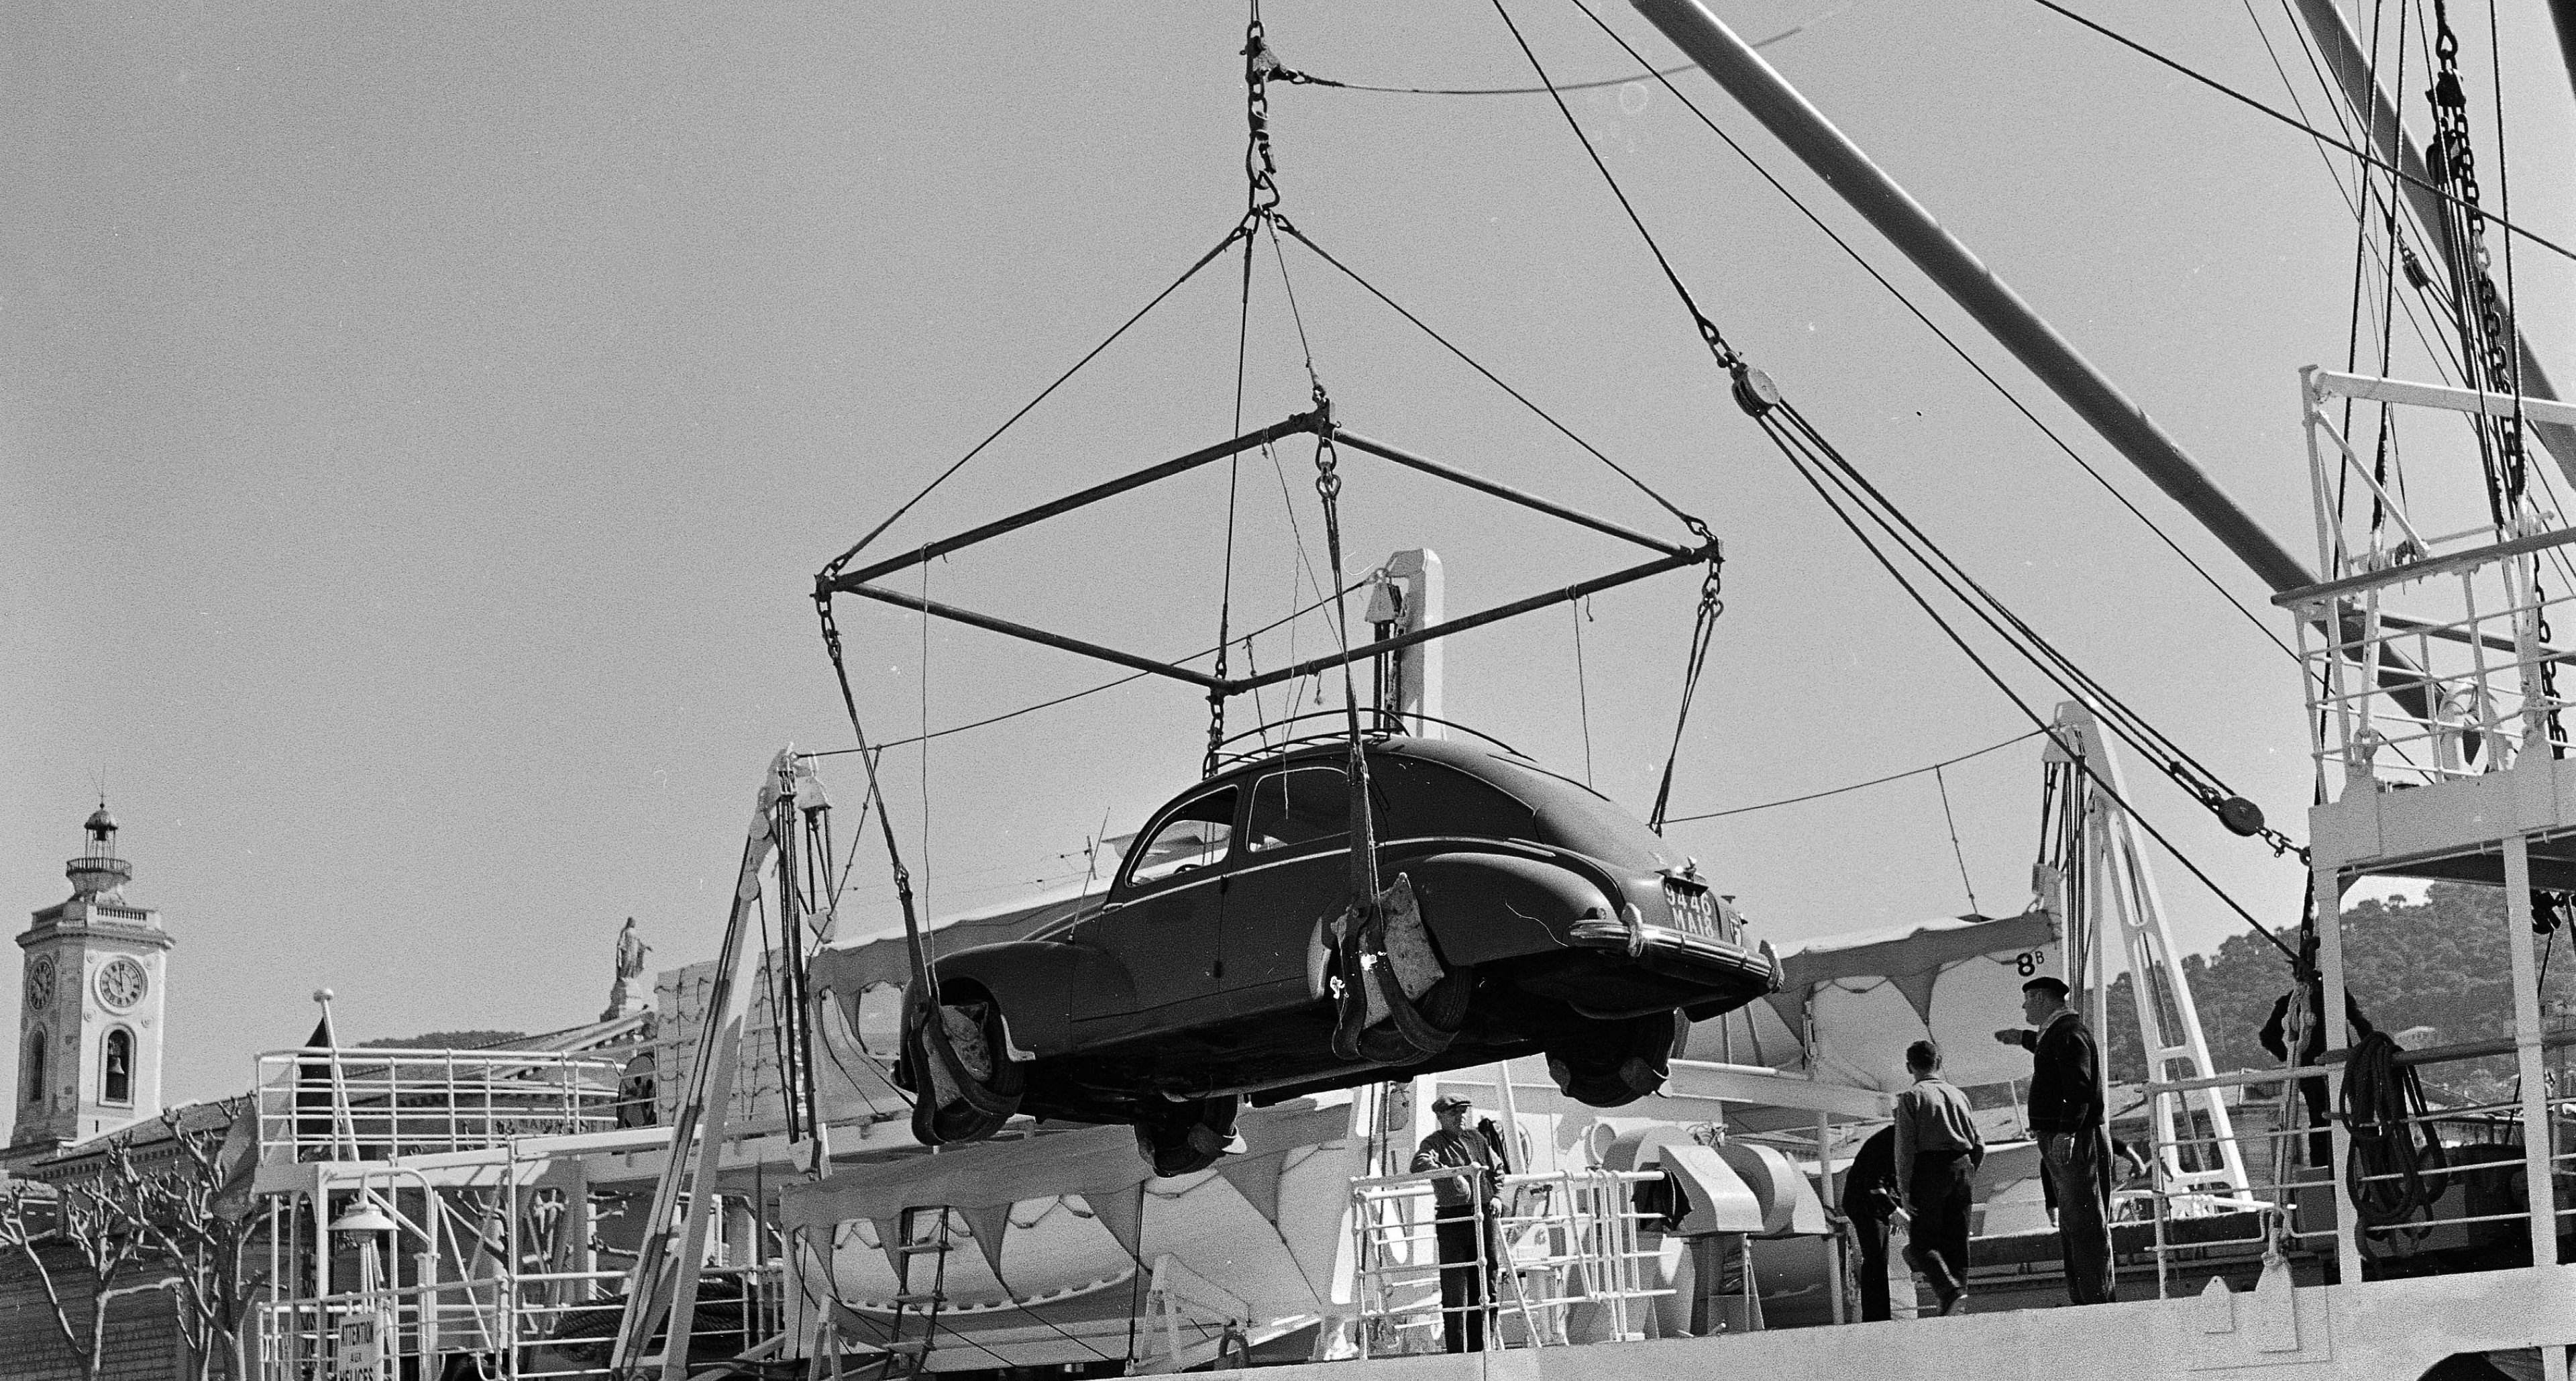 Loading of a car aboard the 'Cyrnos' operating between Nice and Corsica, about 1955. (Photo by Roger Viollet/Getty Images)